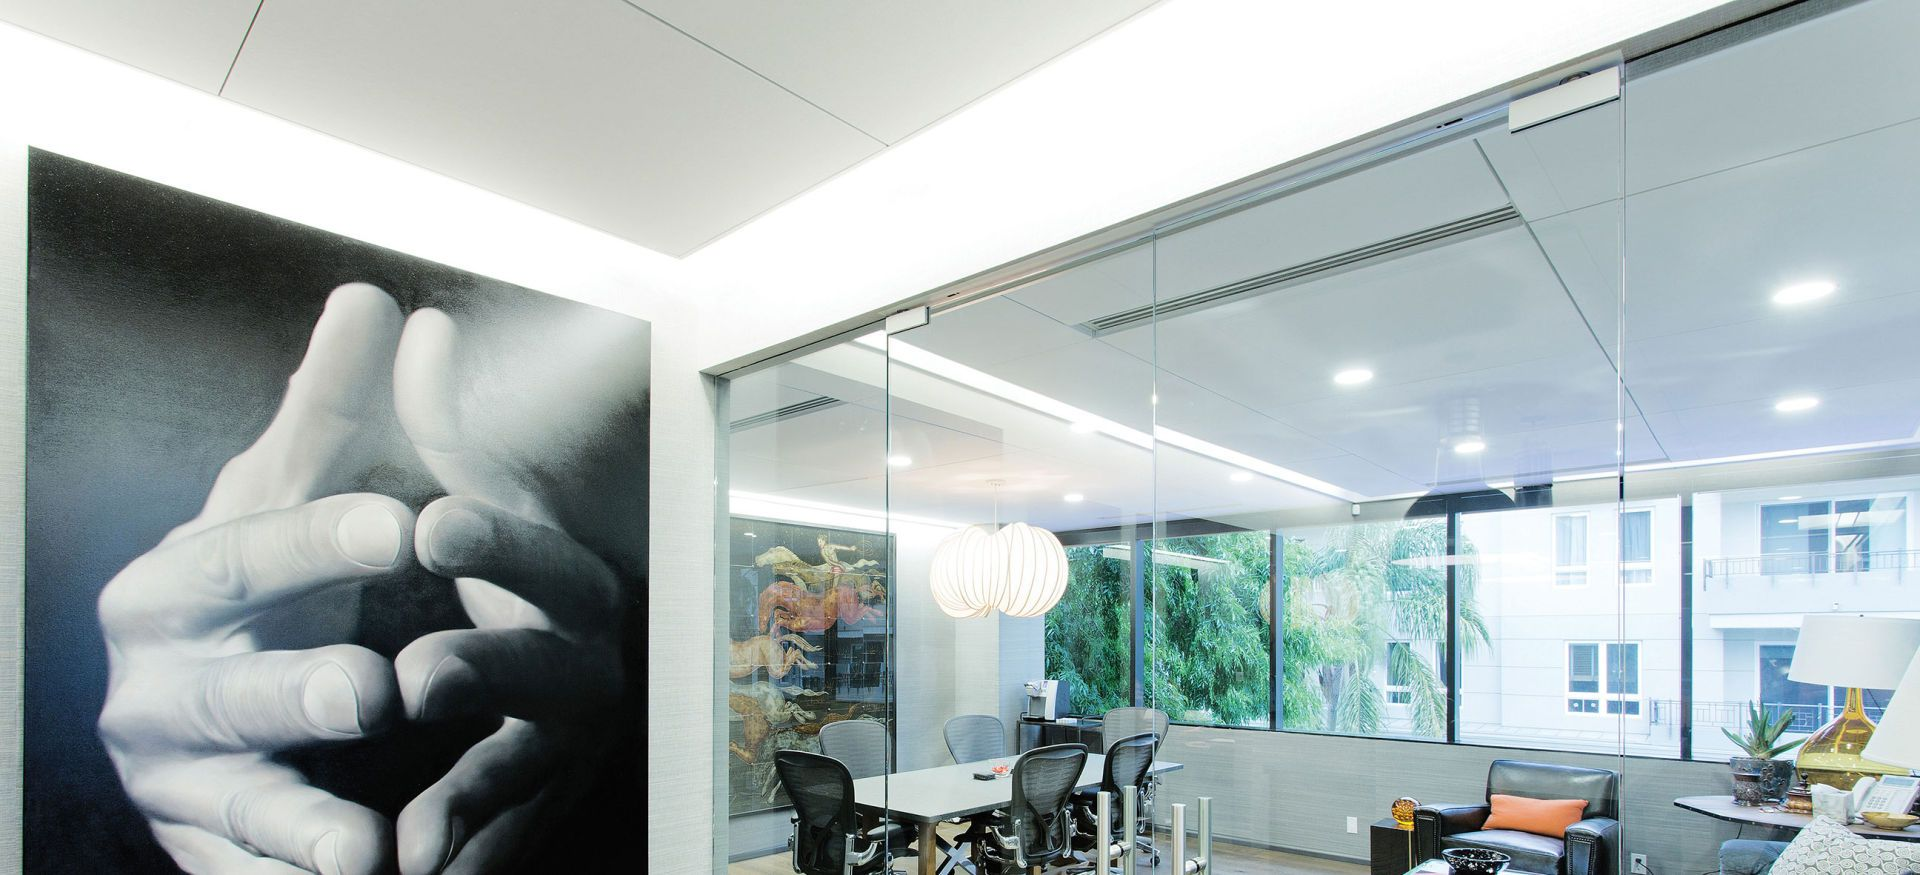 For This Private Foundation Office The Look Is All Class And Glass The Bionic Perimeter Wall Grazer Fro Floating Ceiling Perimeter Lighting Indirect Lighting